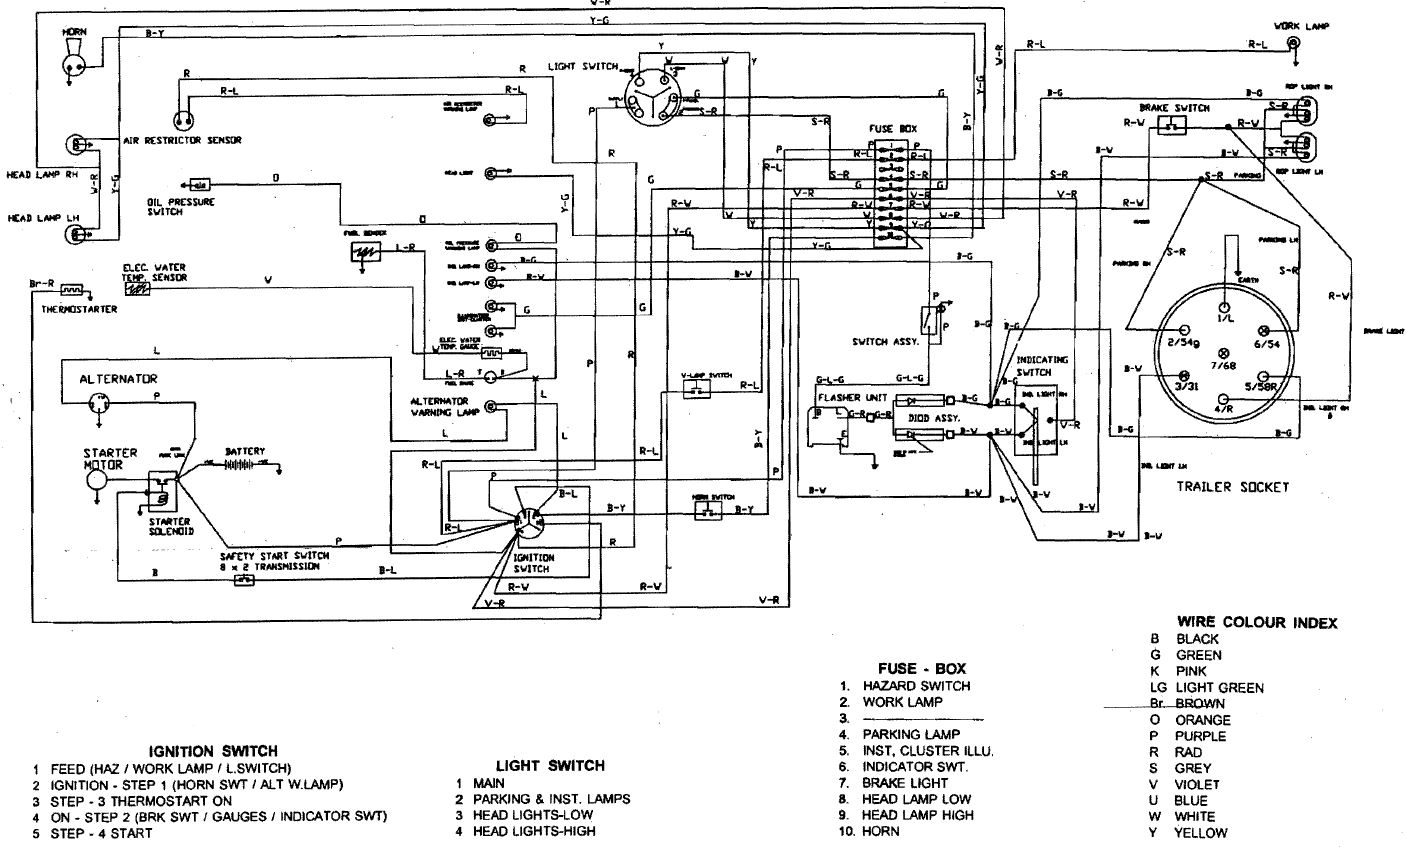 20158463319_b82d524c3d_o ignition switch wiring diagram john deere 737 wiring diagram at soozxer.org